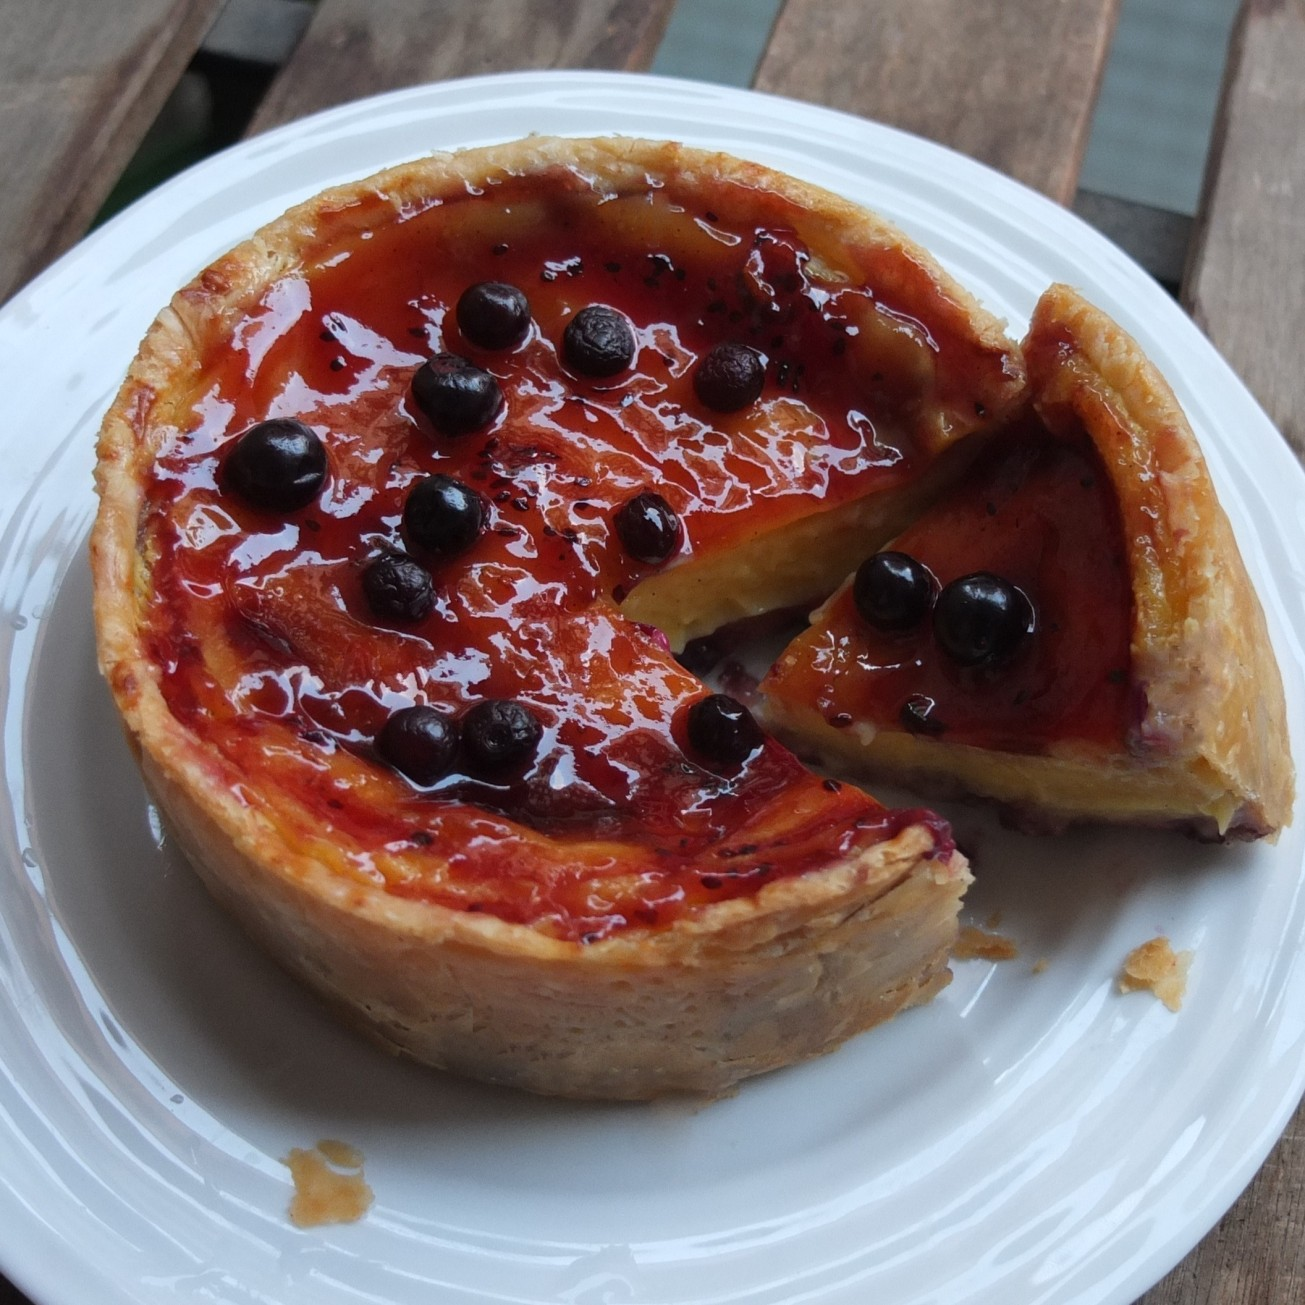 Blackcurrant custard tart - flan cassis